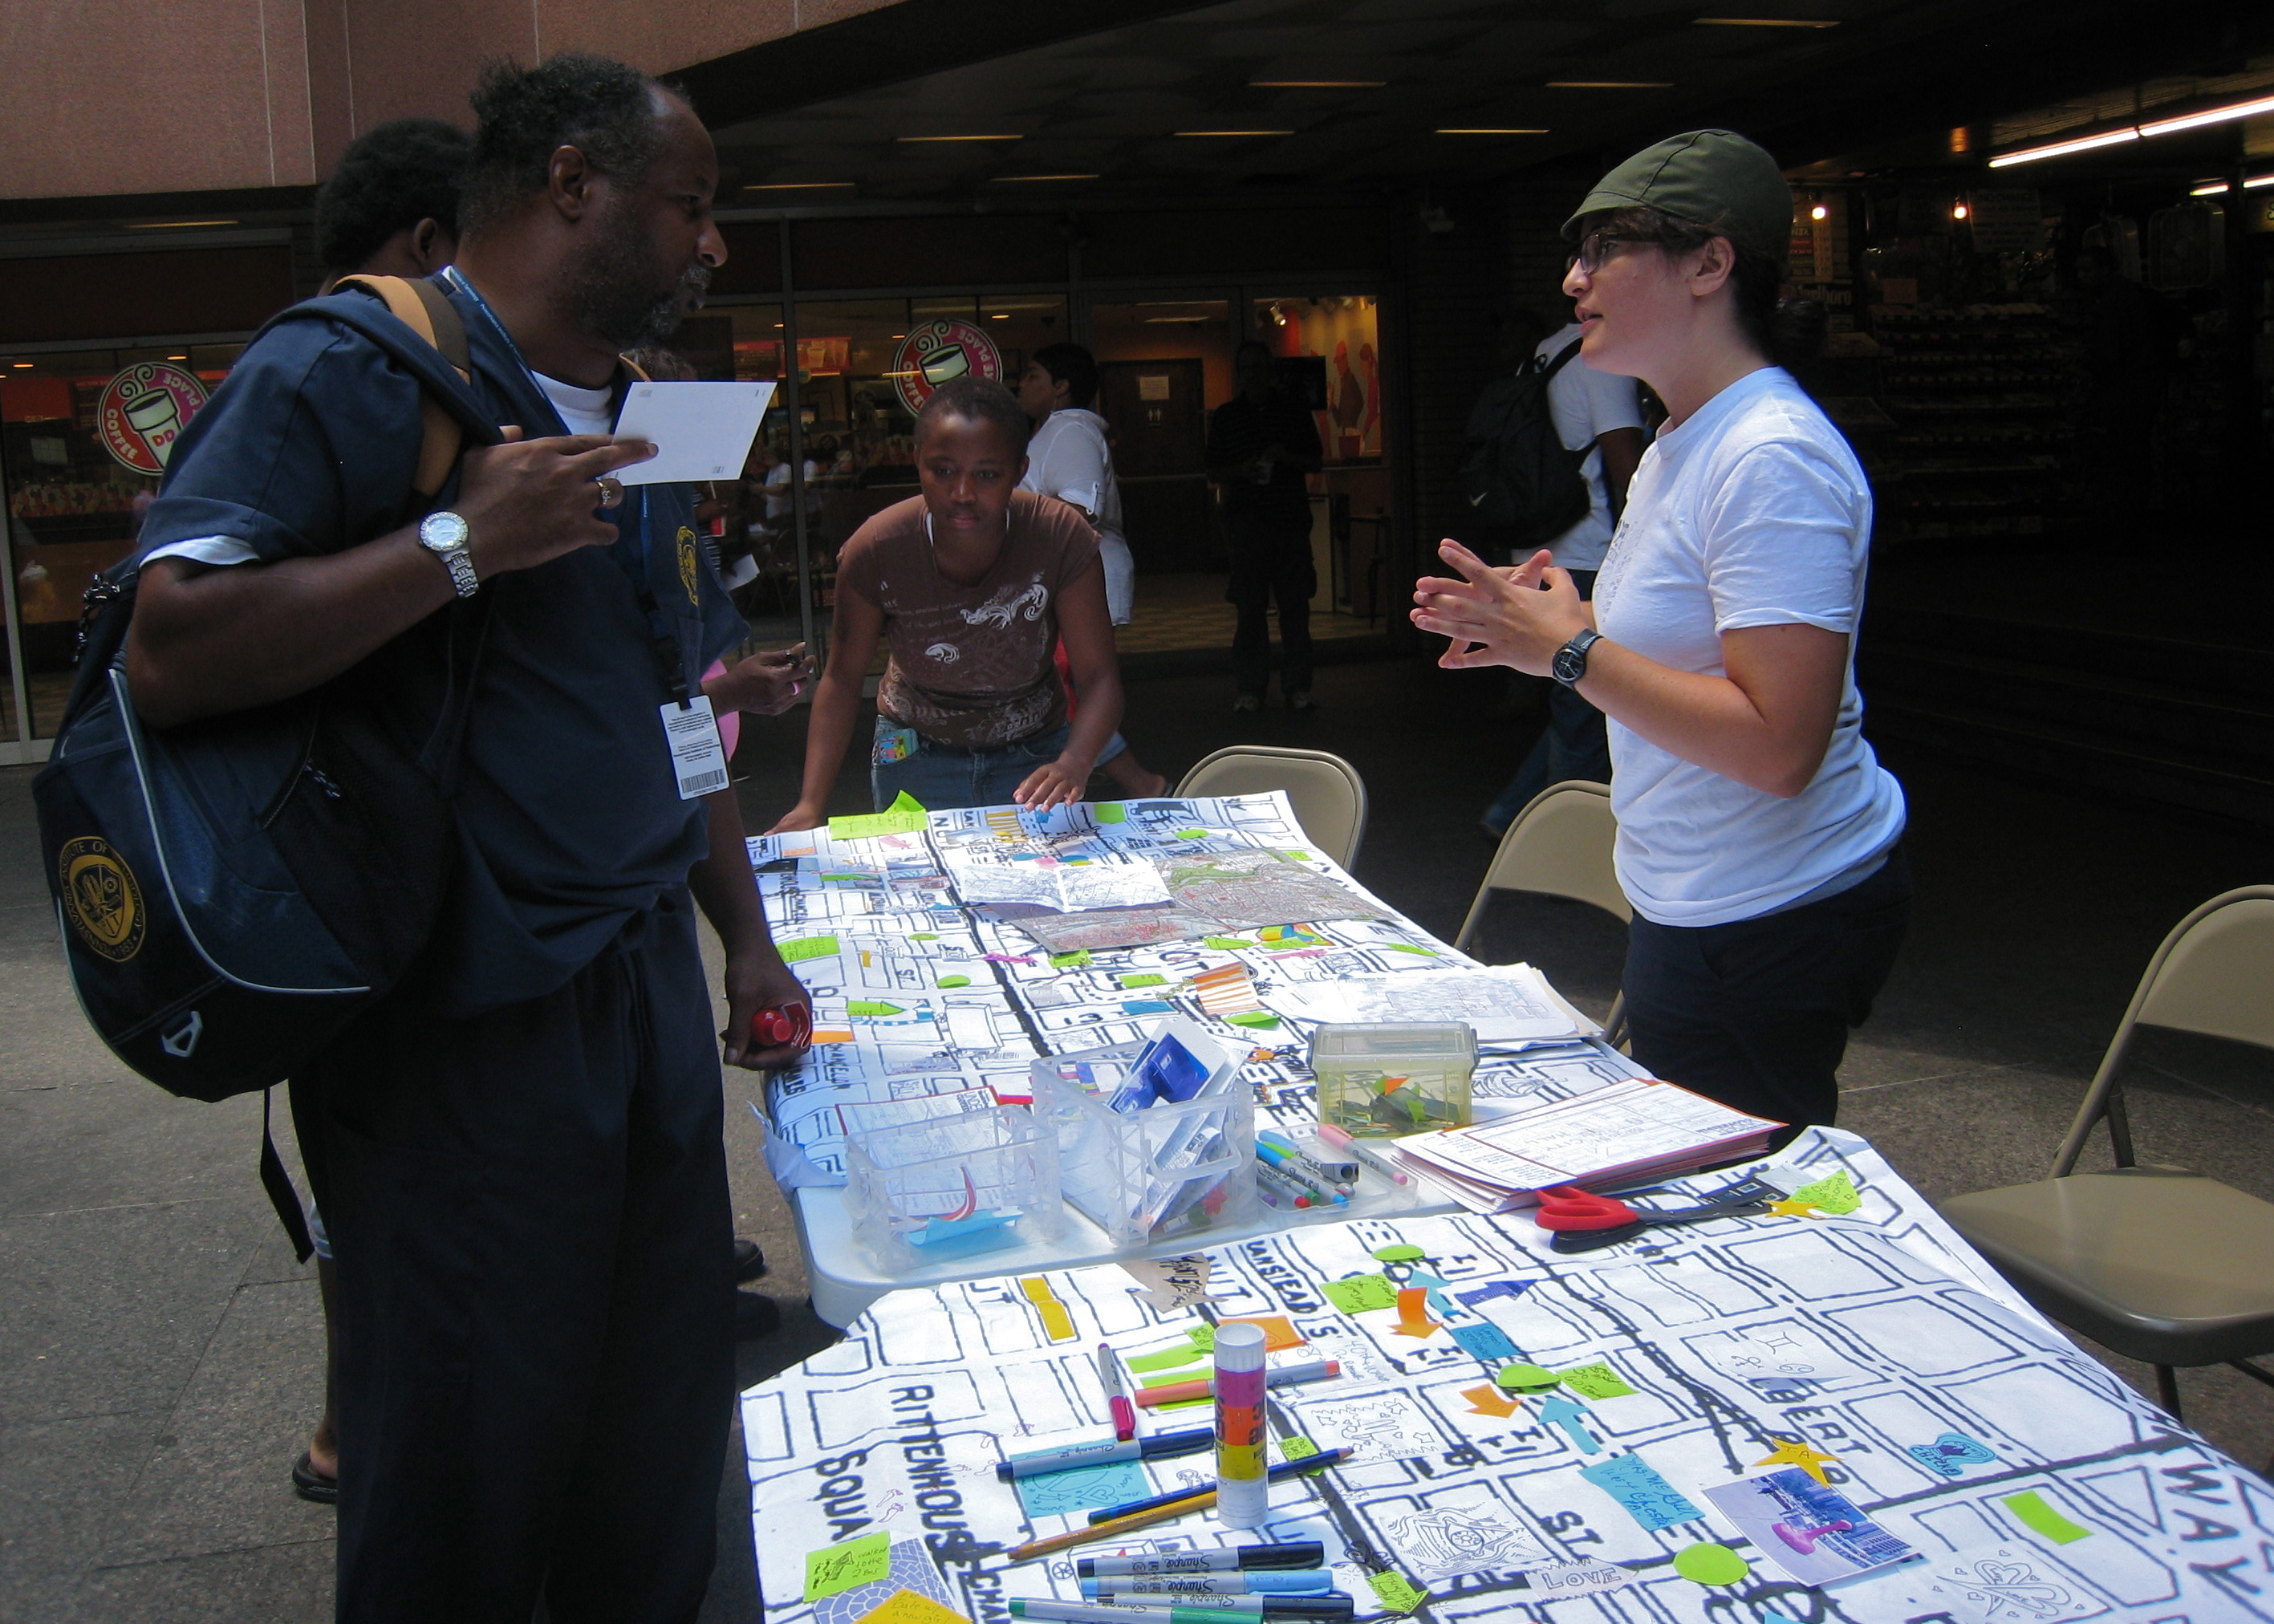 Miriam Singer (right) talking to people passing through Centre Square's subway concourse entrance, asking them to add their routes and stories to the big map.